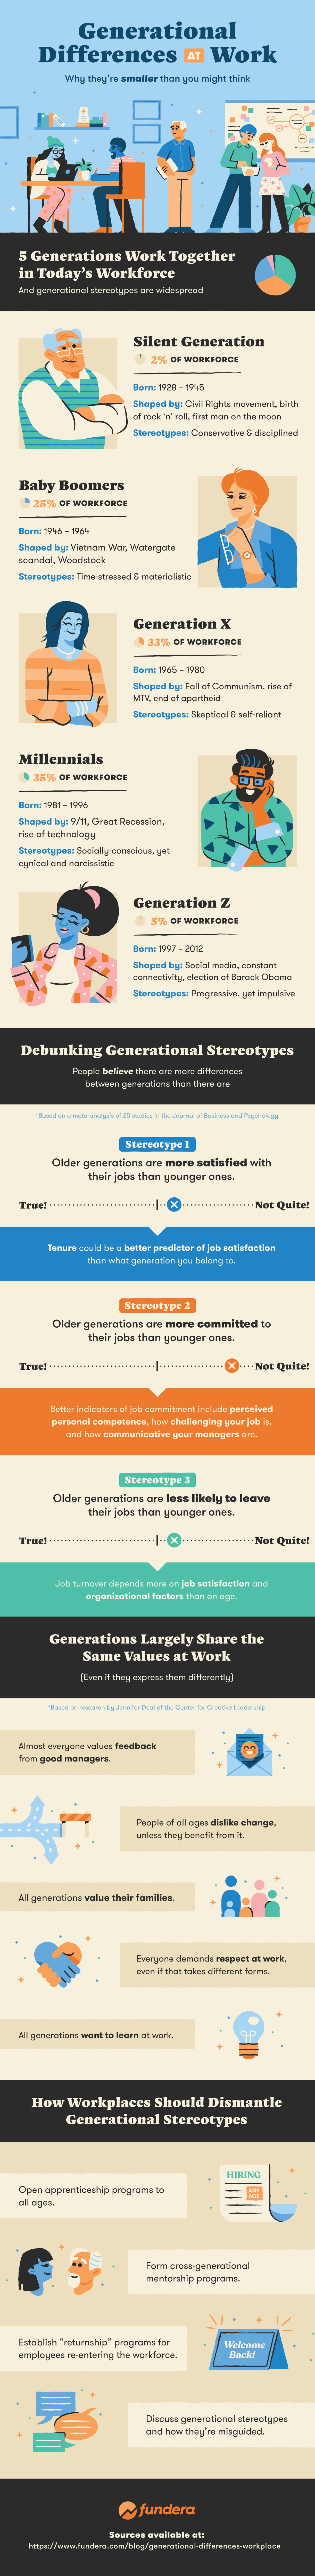 Generational-differences-workplace